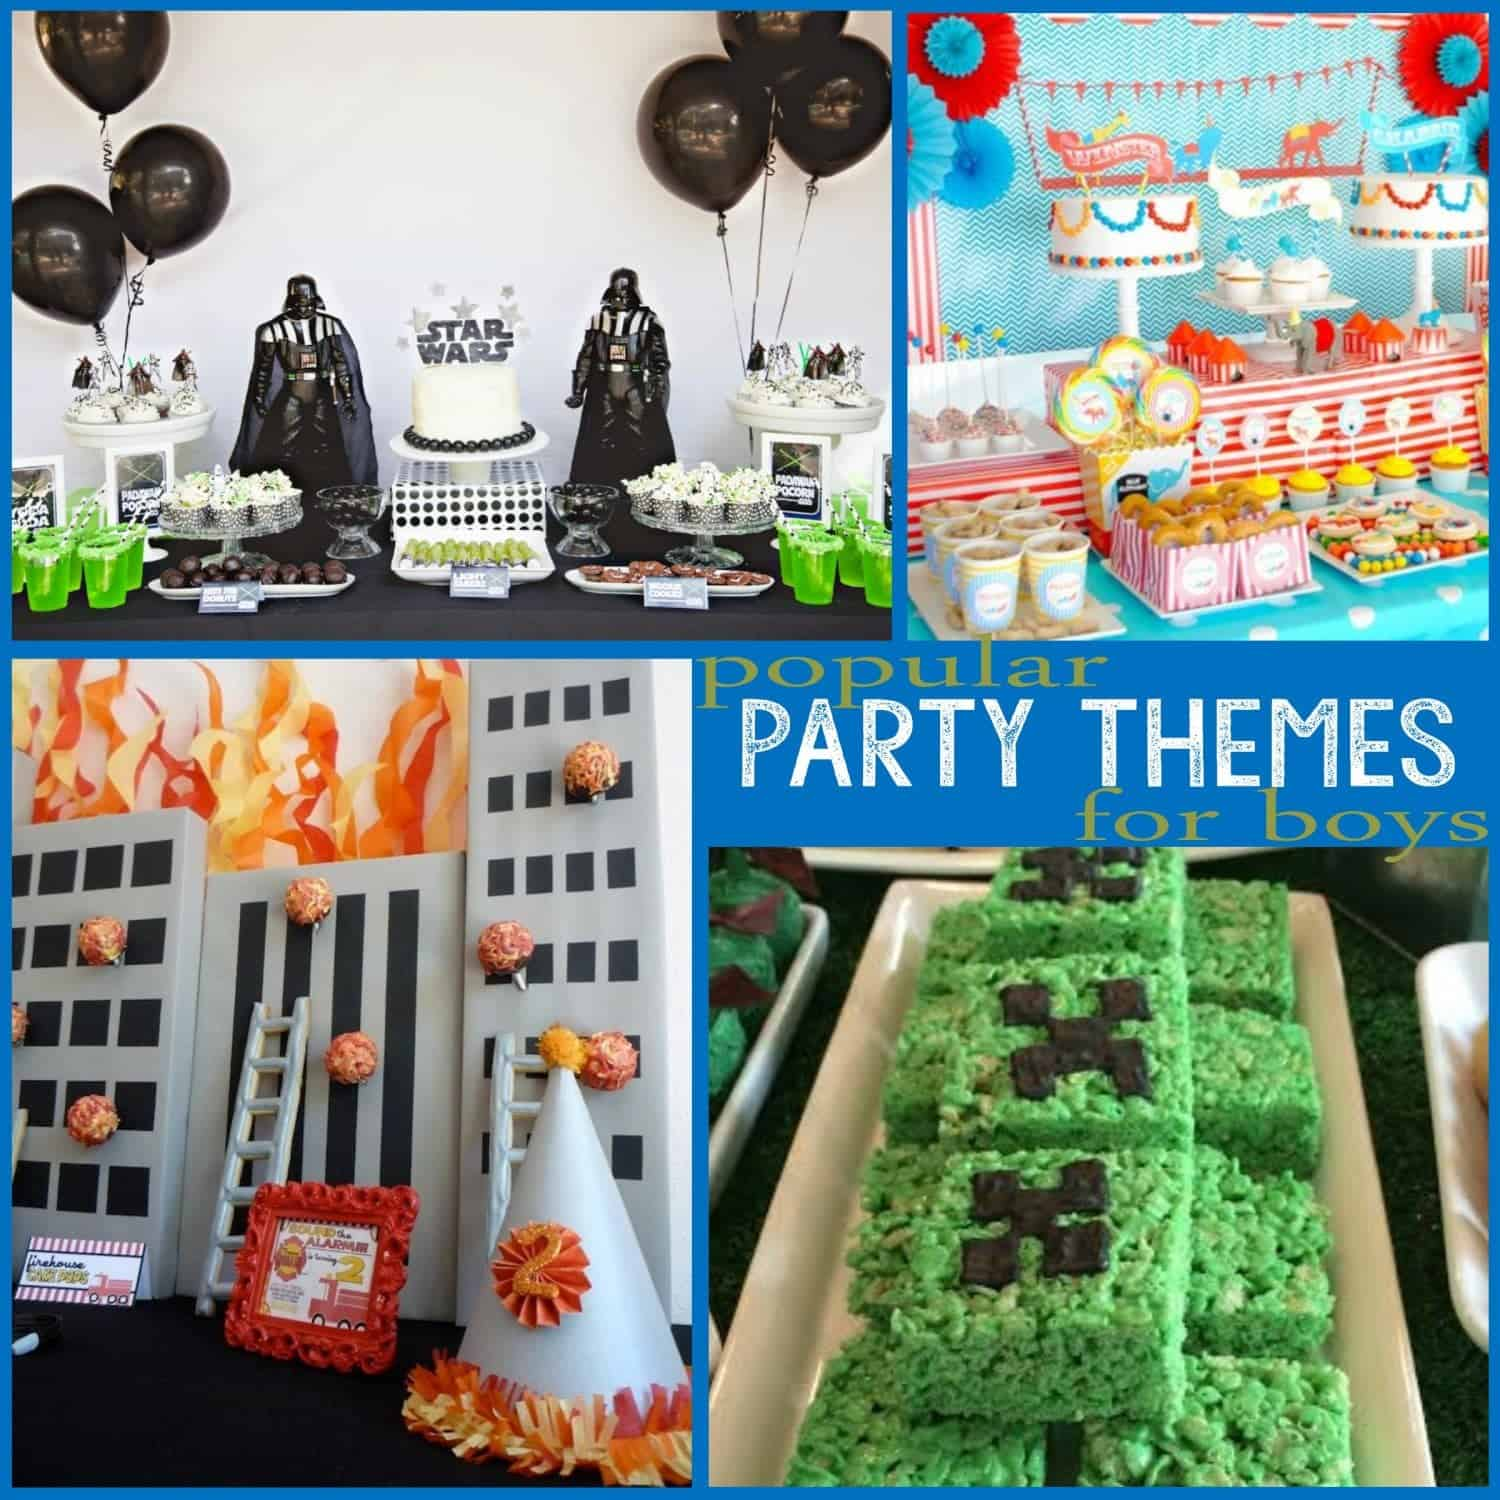 Trends Popular Party Themes for Boys Part 1 Mimis Dollhouse